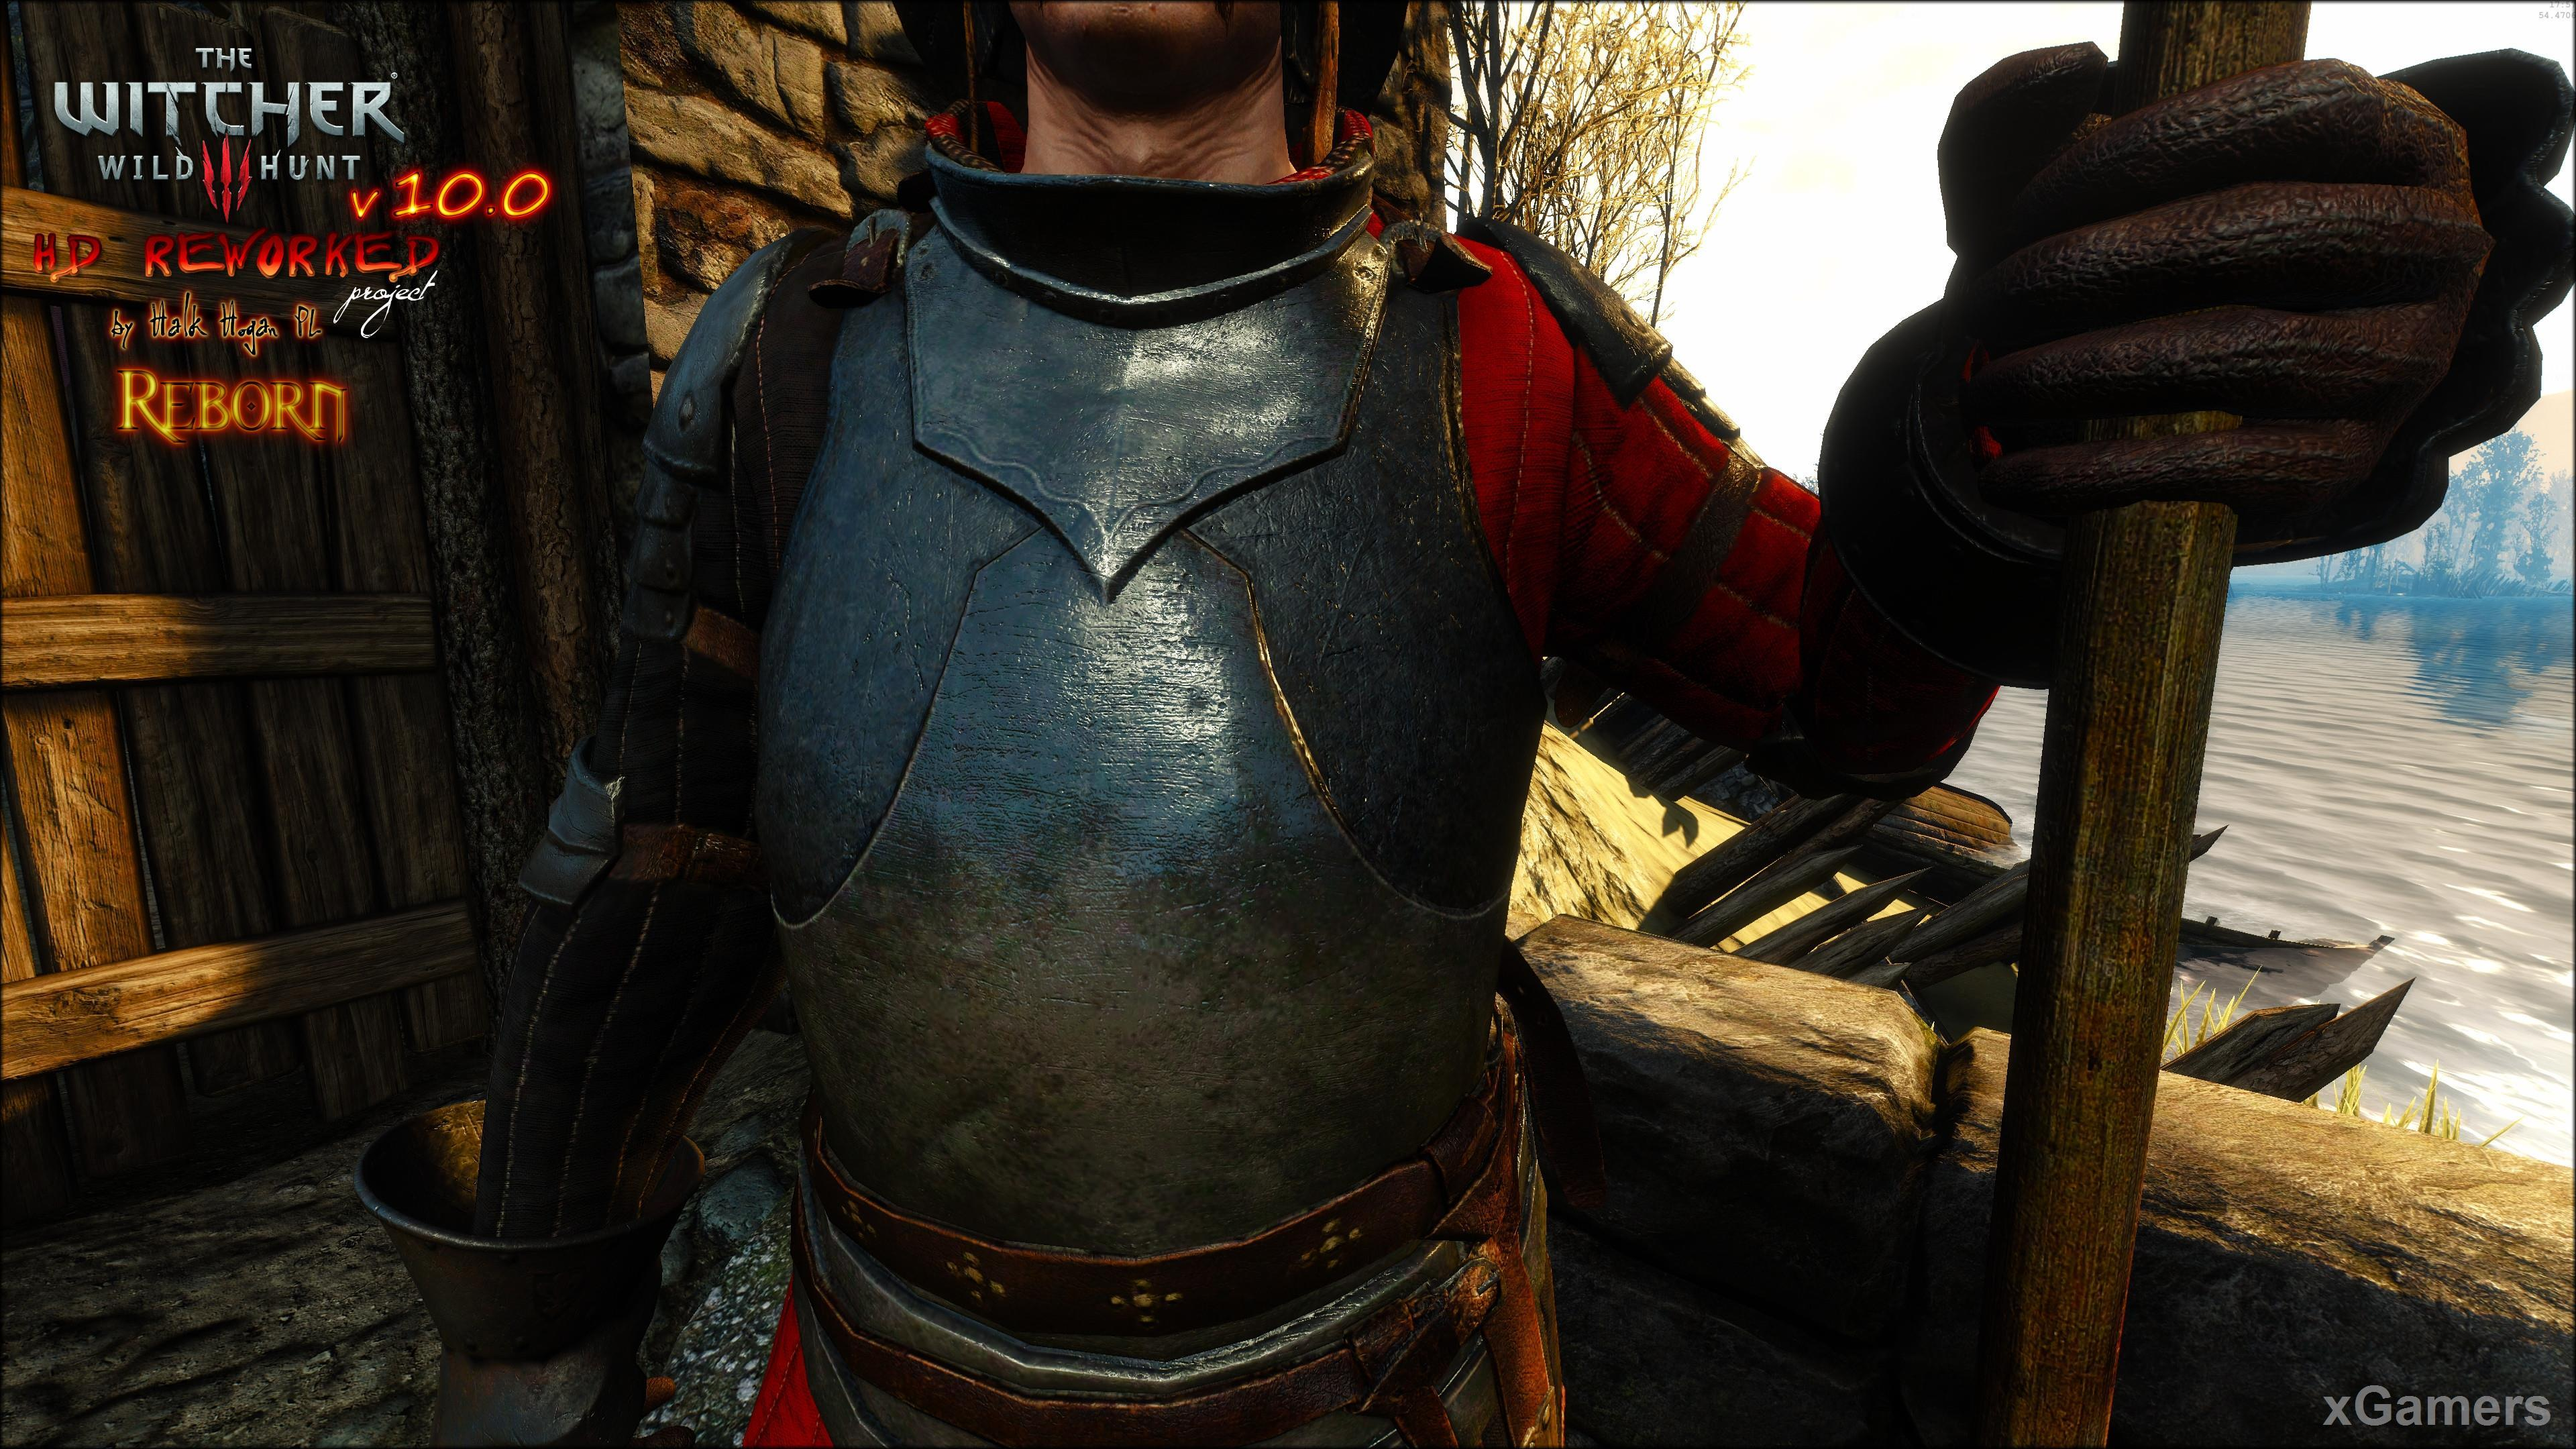 Mirroring objects on metal in The Witcher 3 HD Reworked Project